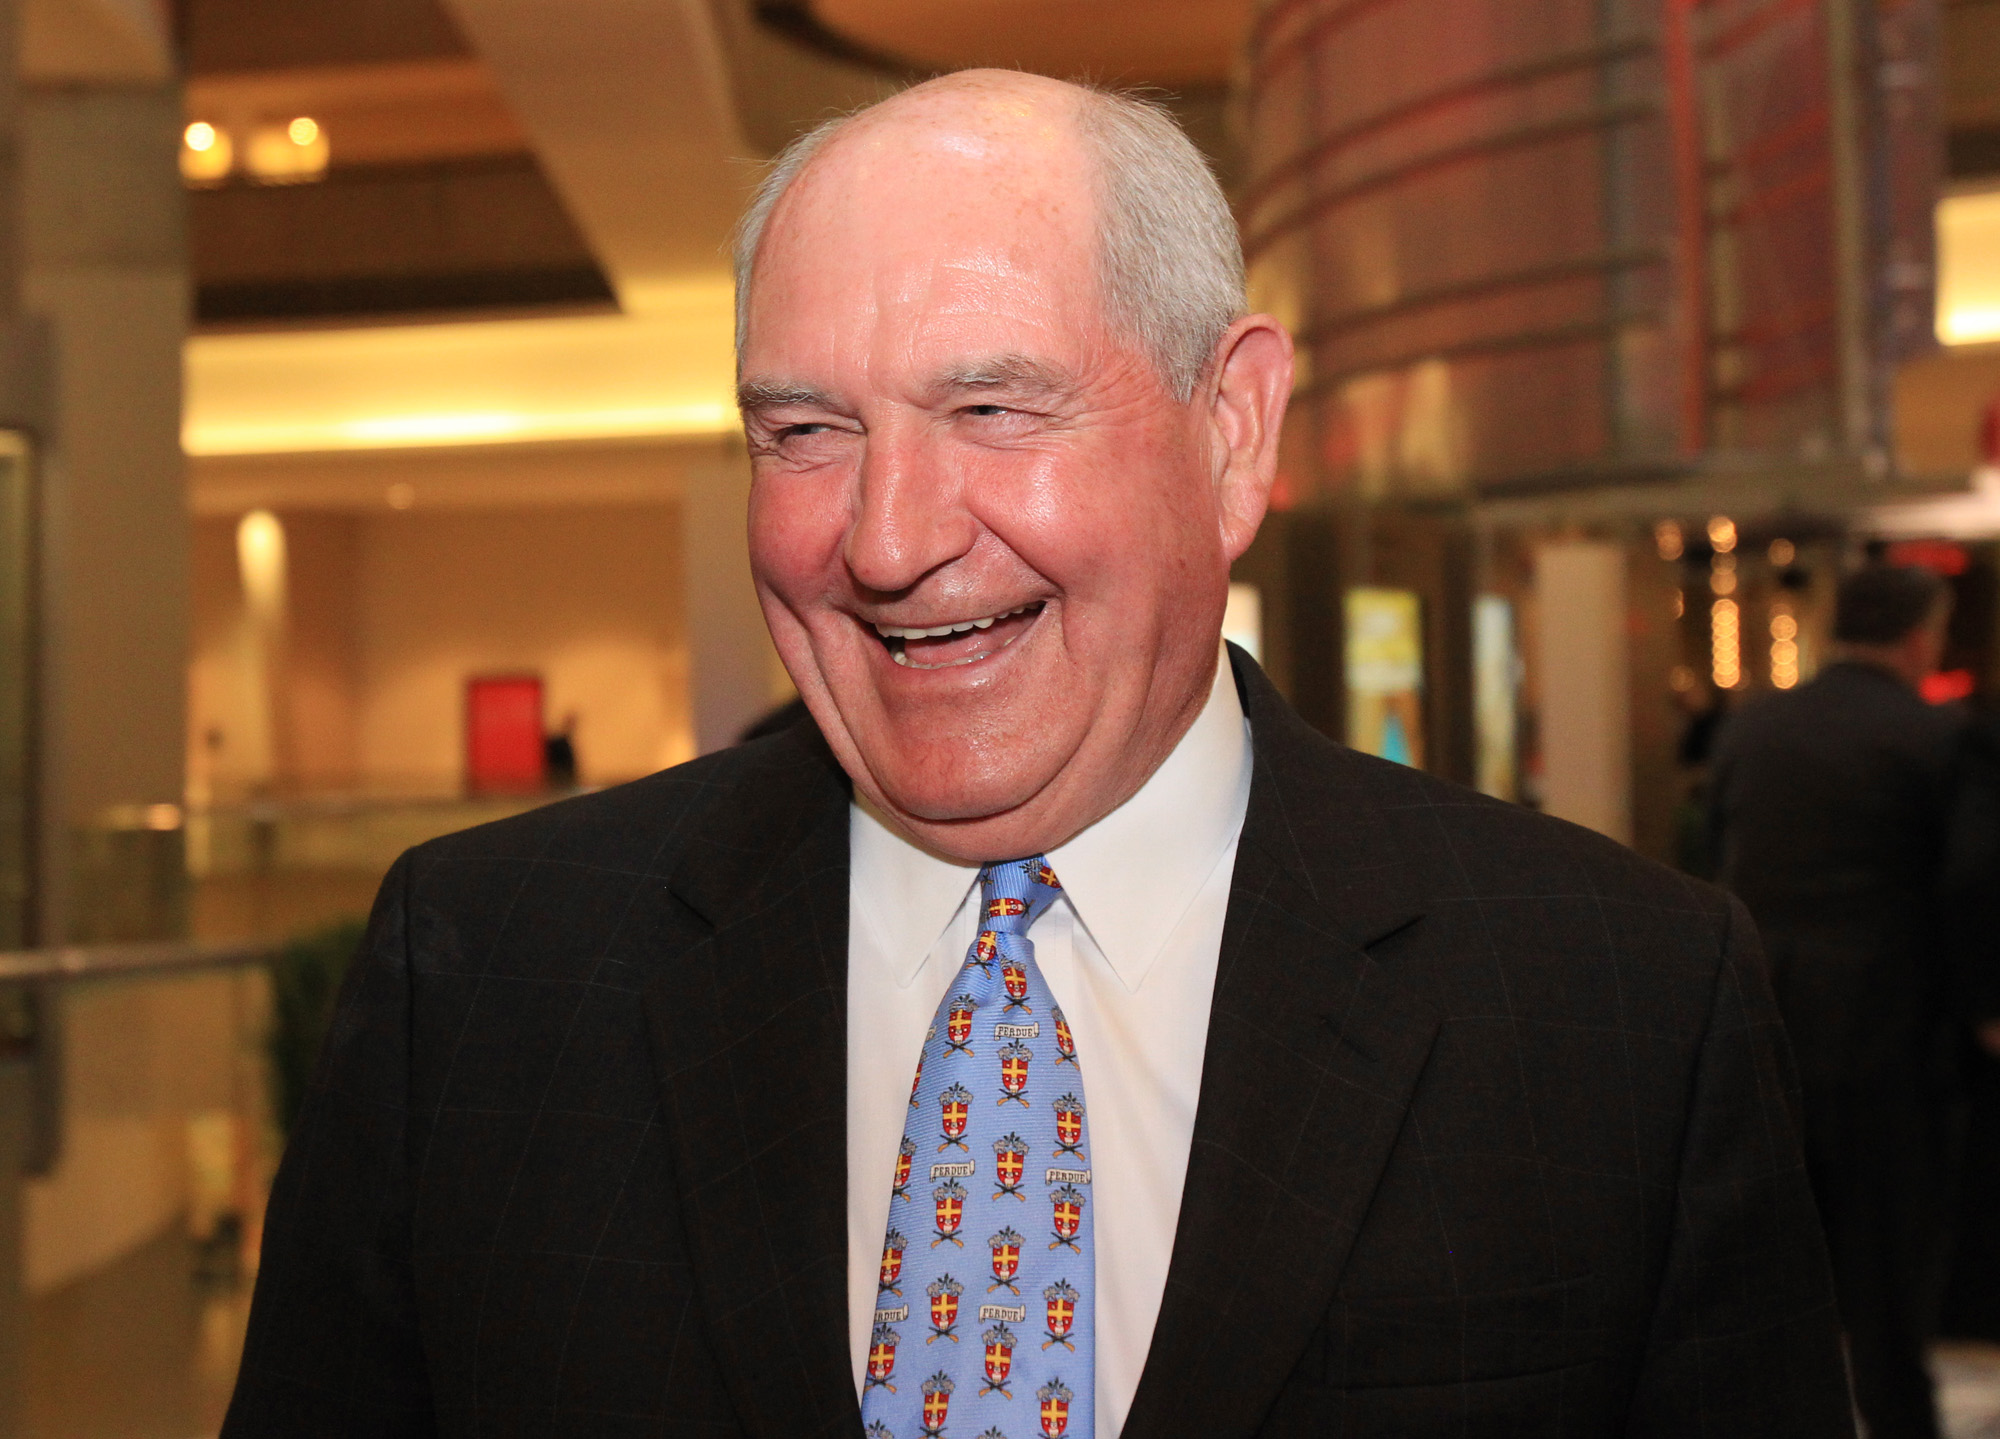 Sonny Perdue's Capitol Hill tour begins in earnest on Monday